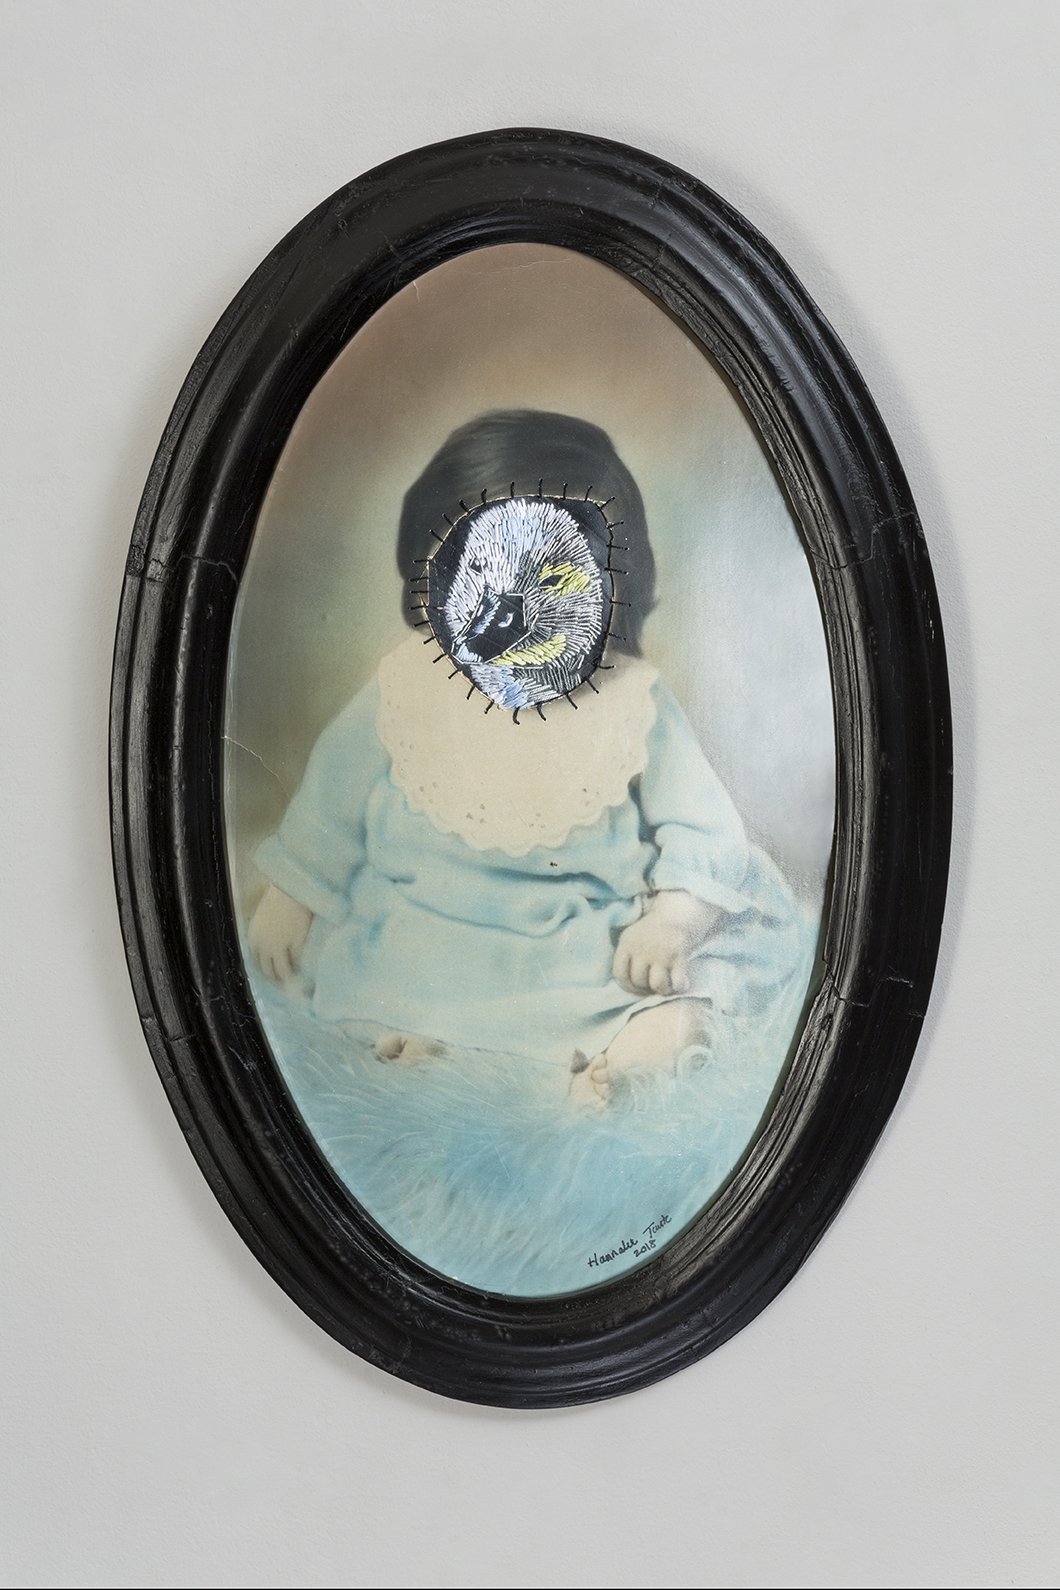 Ugly duckling 59 x 39 cm altered vintage photograph and frame, cotton thread and rubber 2018